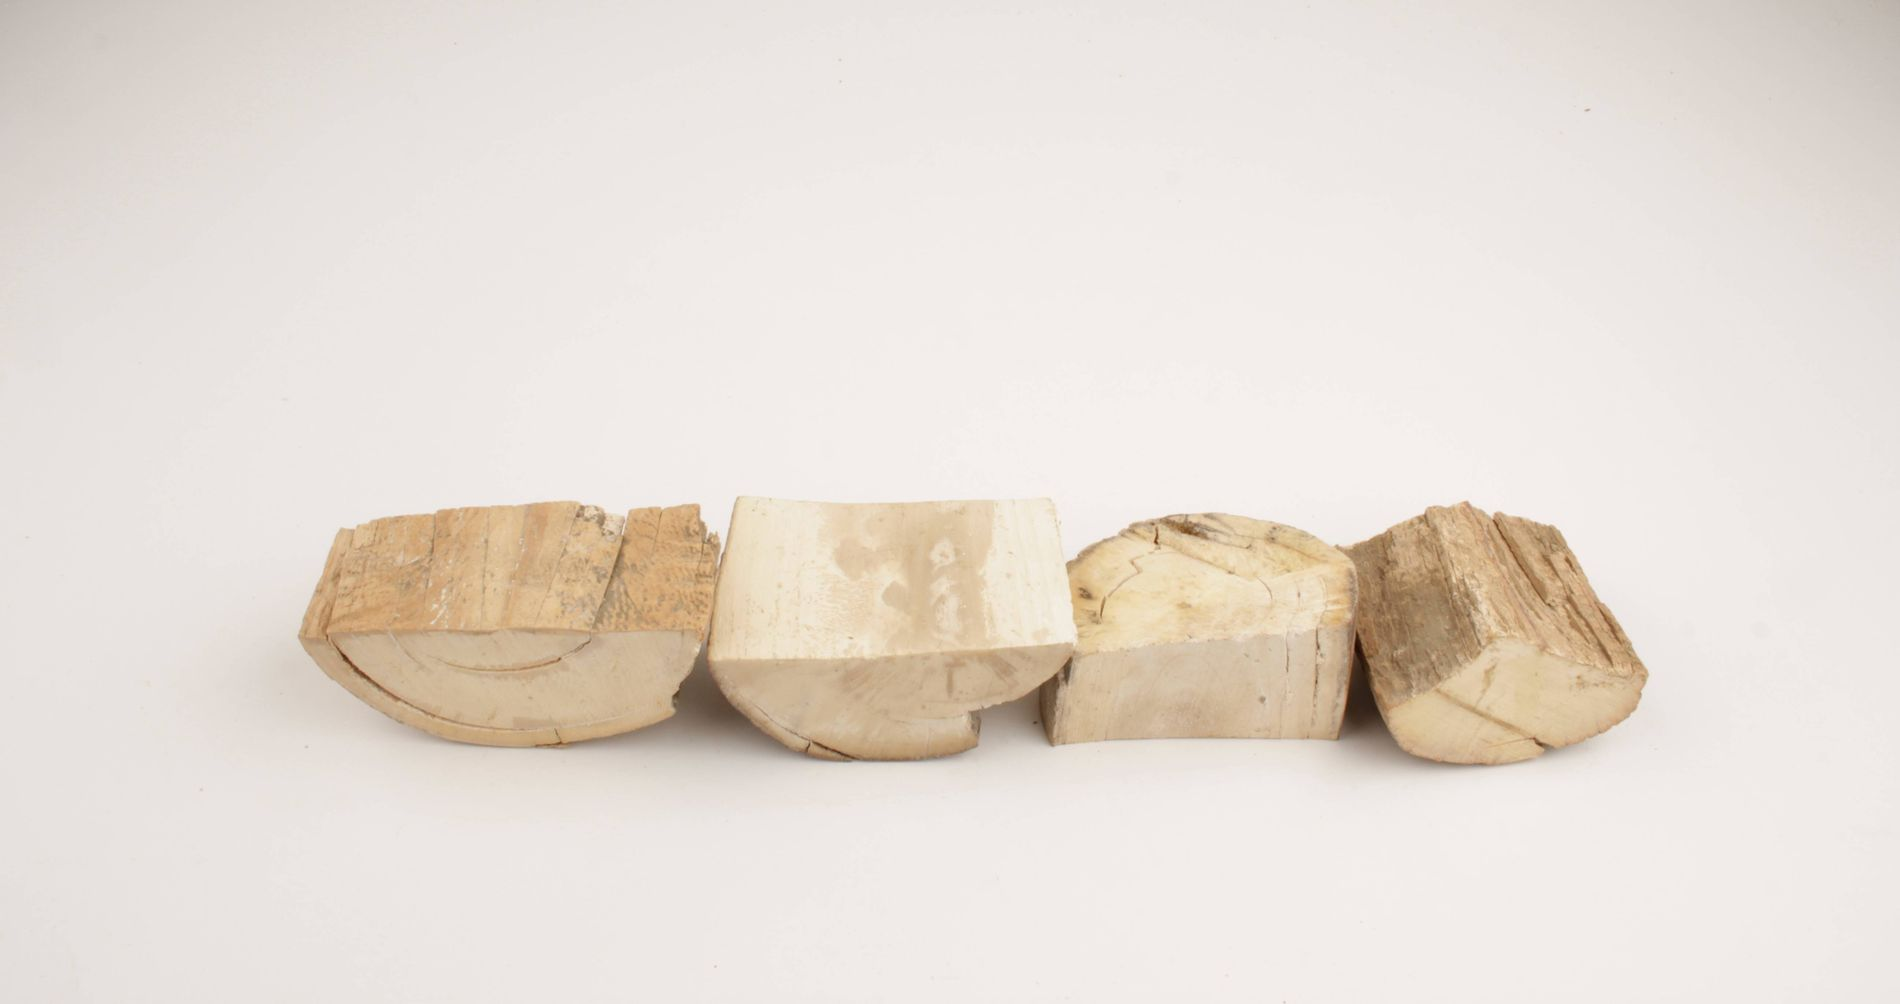 Raw mammoth ivory pieces